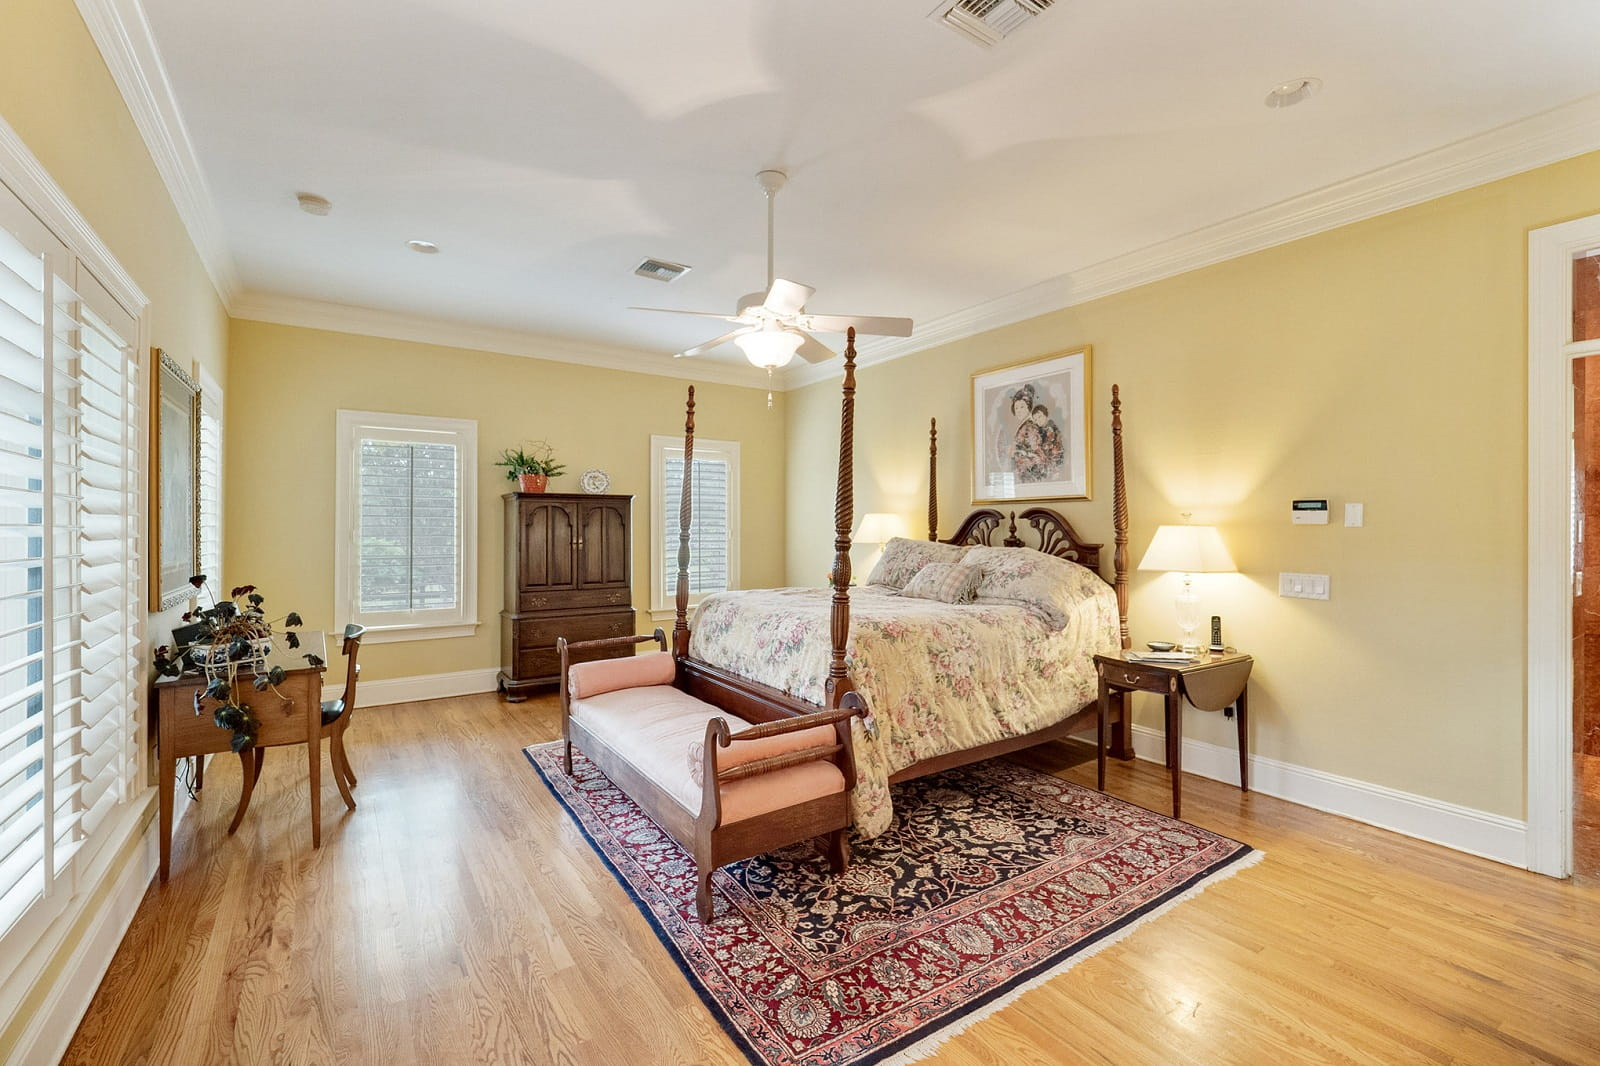 Real Estate Photography in Sanford - FL - USA - Bedroom View